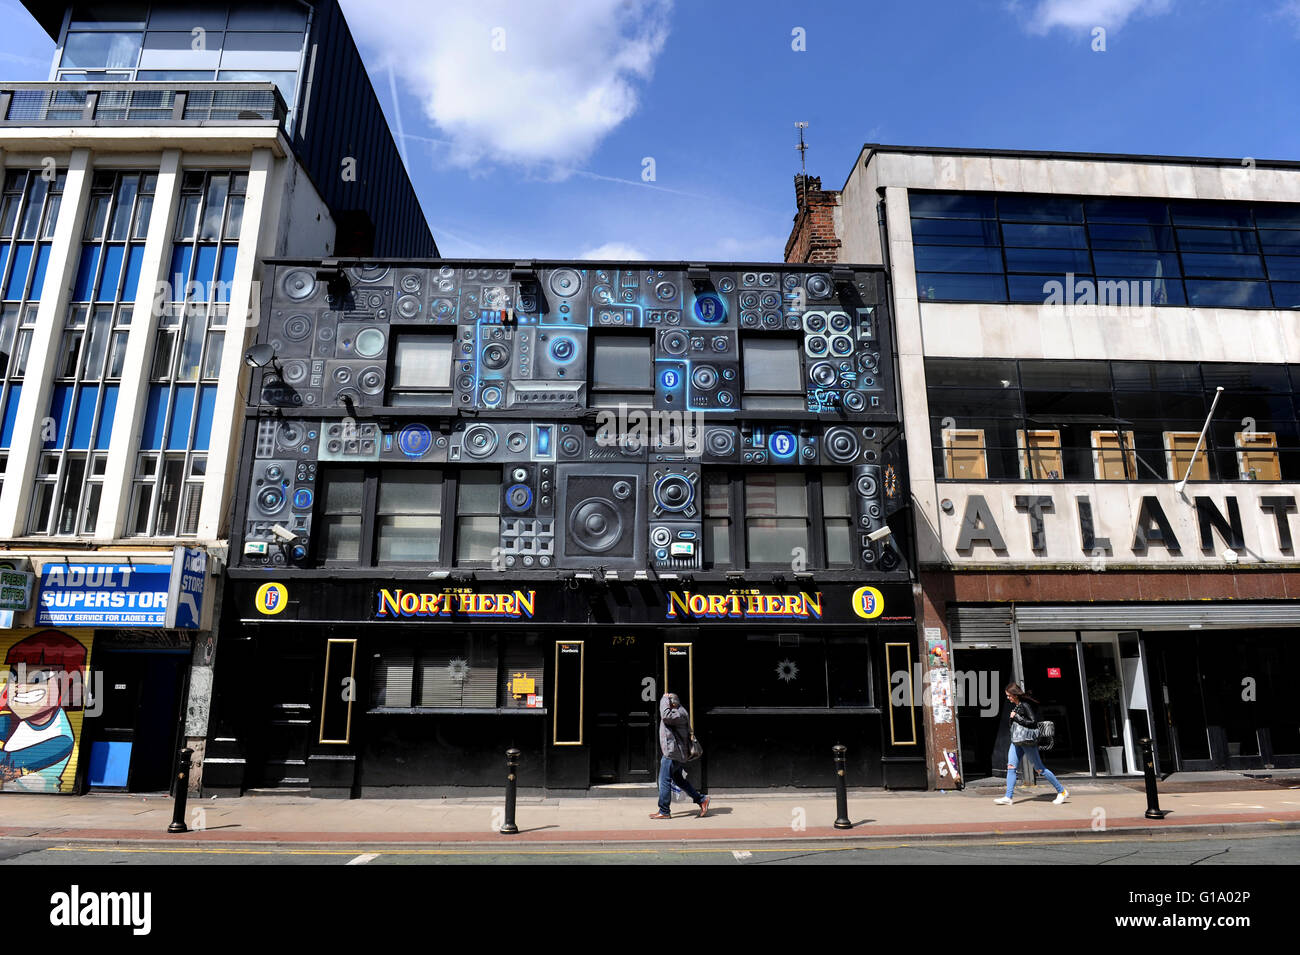 Oldham Street, Northern Quarter, Manchester, Tuesday May 10, 2016. - Stock Image